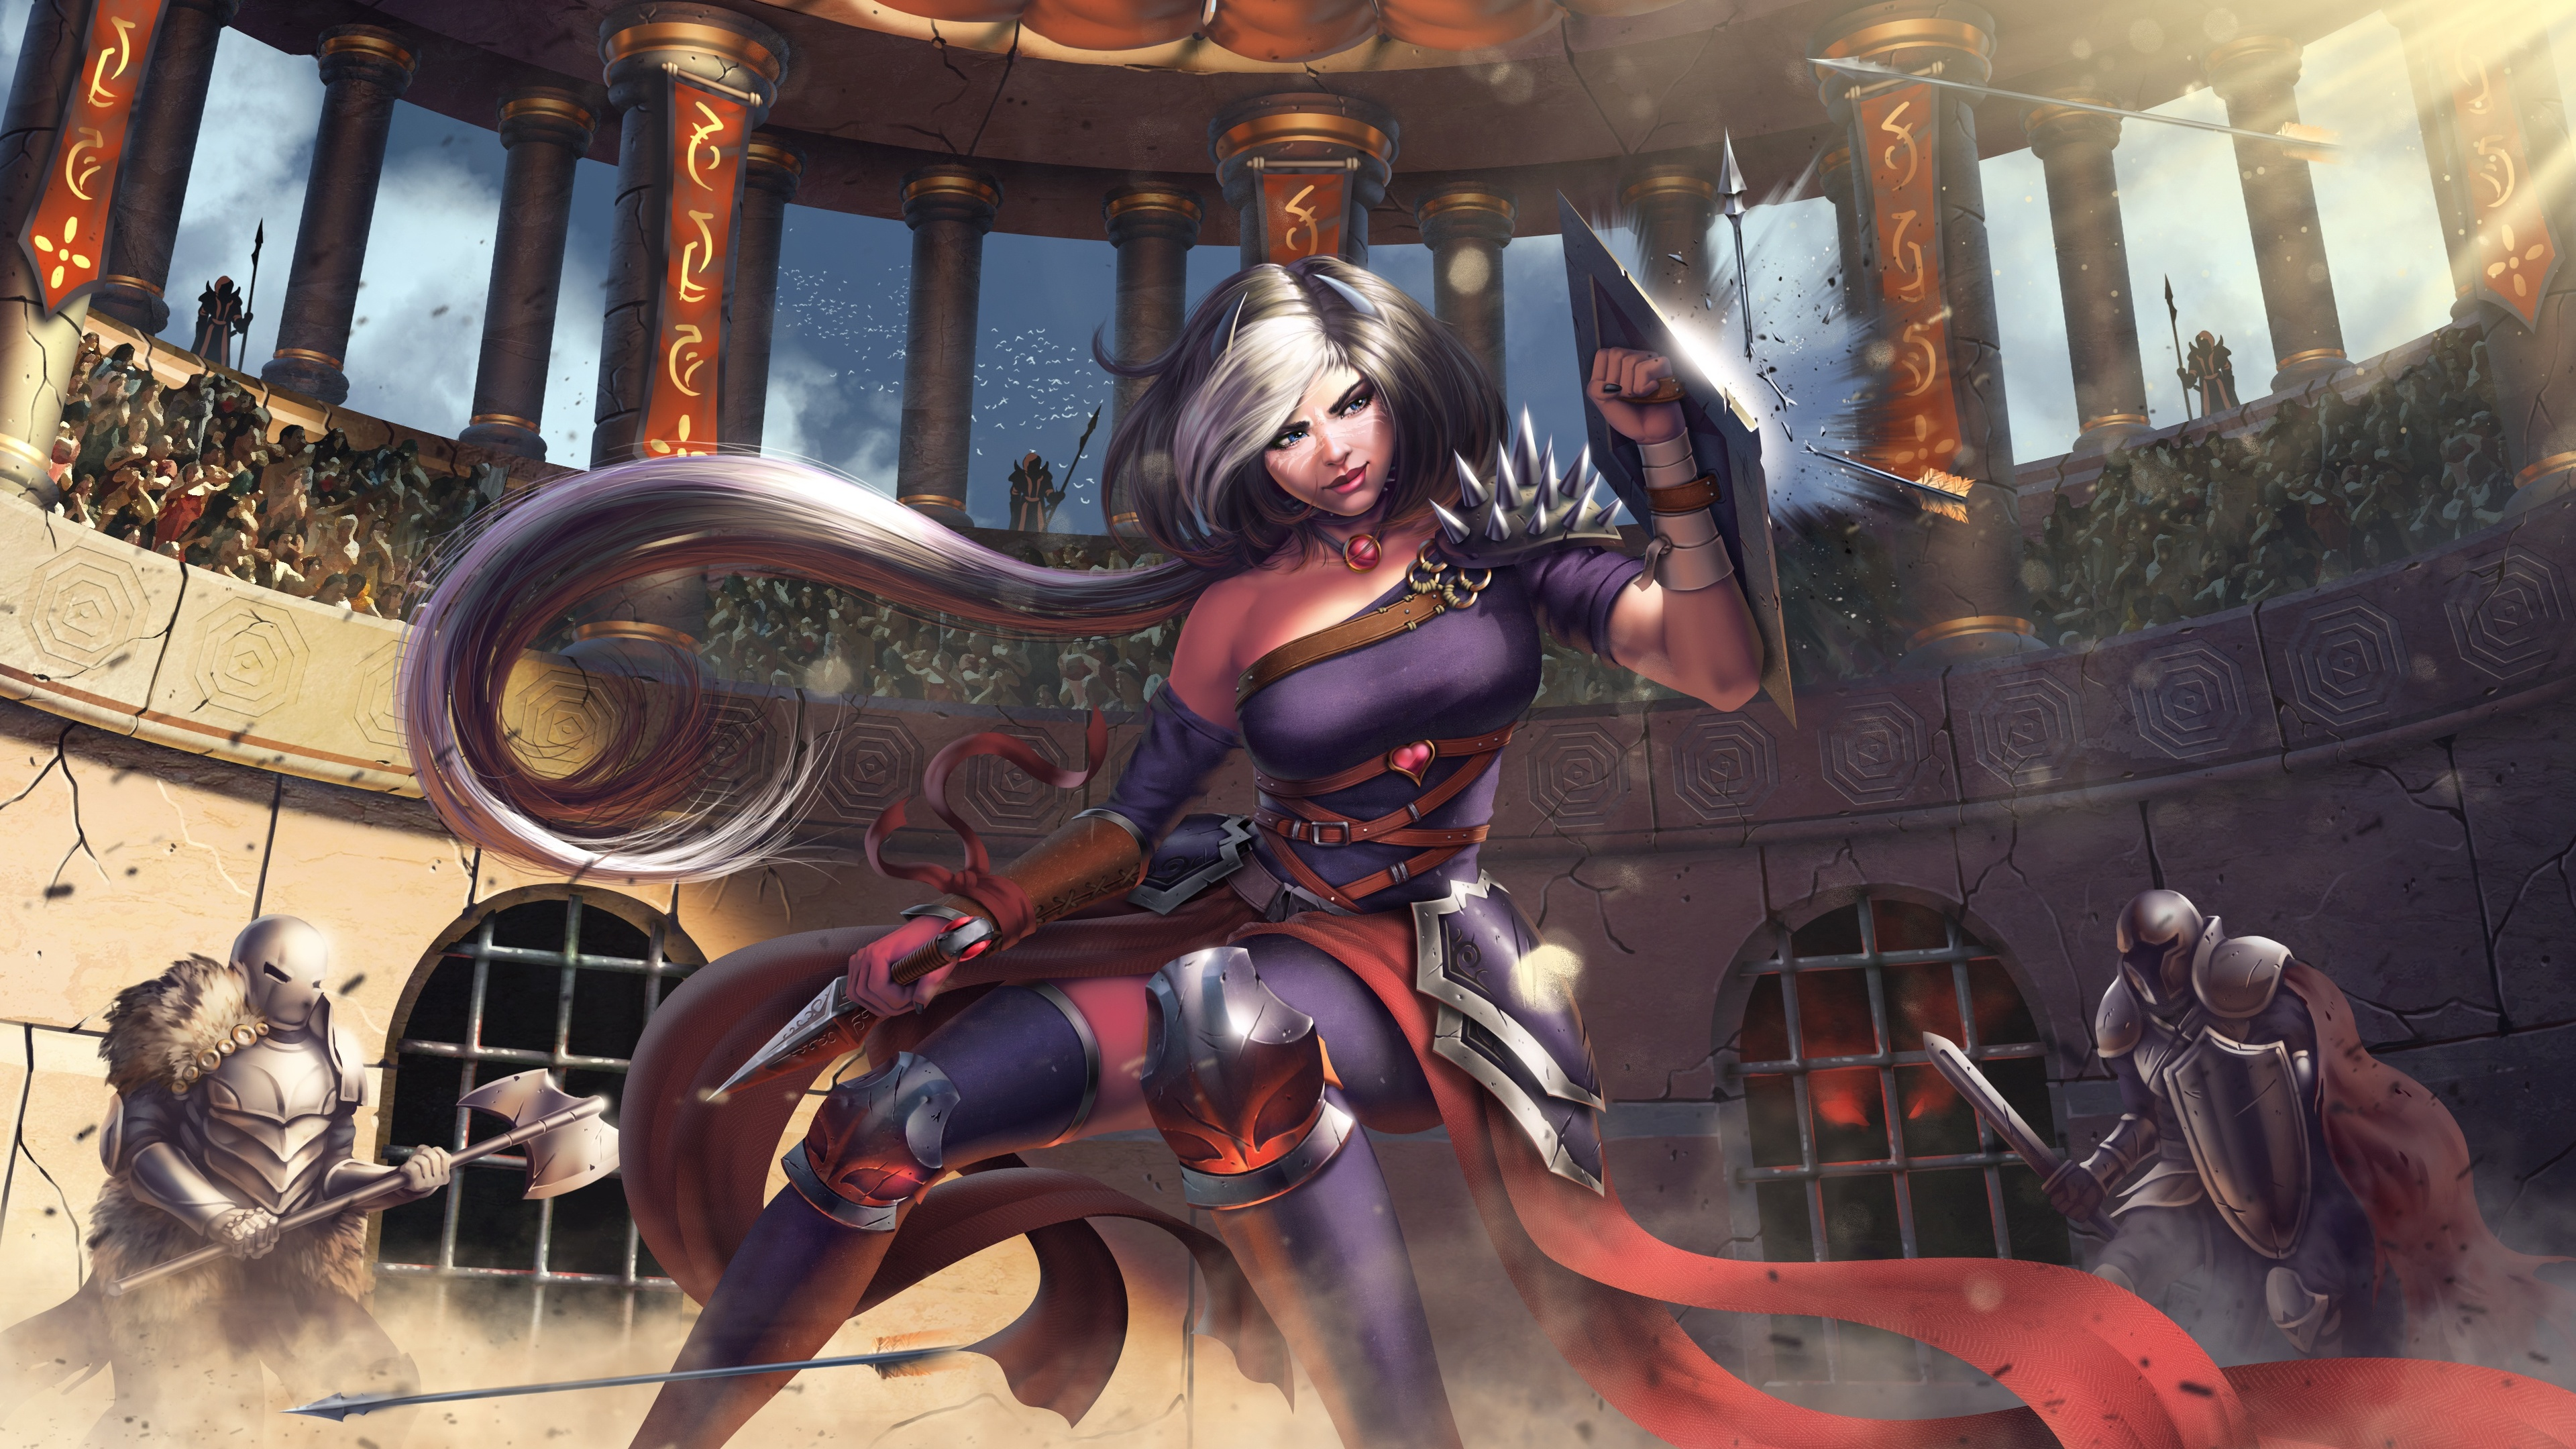 woman warrior fighting against knight 1540751721 - Woman Warrior Fighting Against Knight - warrior wallpapers, knight wallpapers, hd-wallpapers, artwork wallpapers, artist wallpapers, 4k-wallpapers